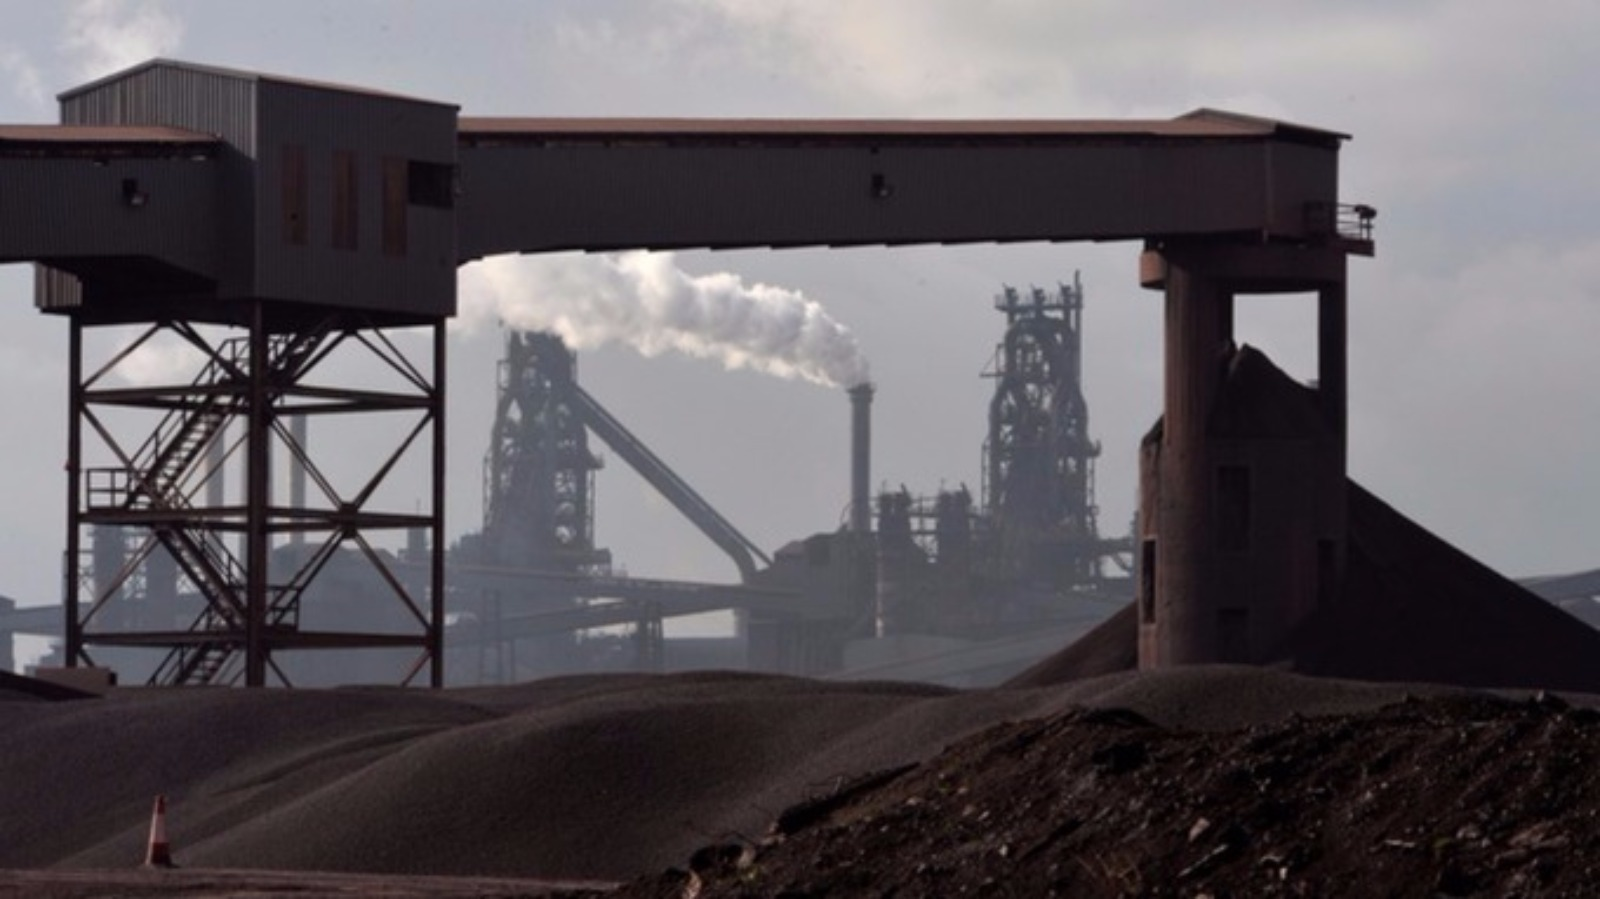 Steel workers to accept pay cut as part of Tata deal